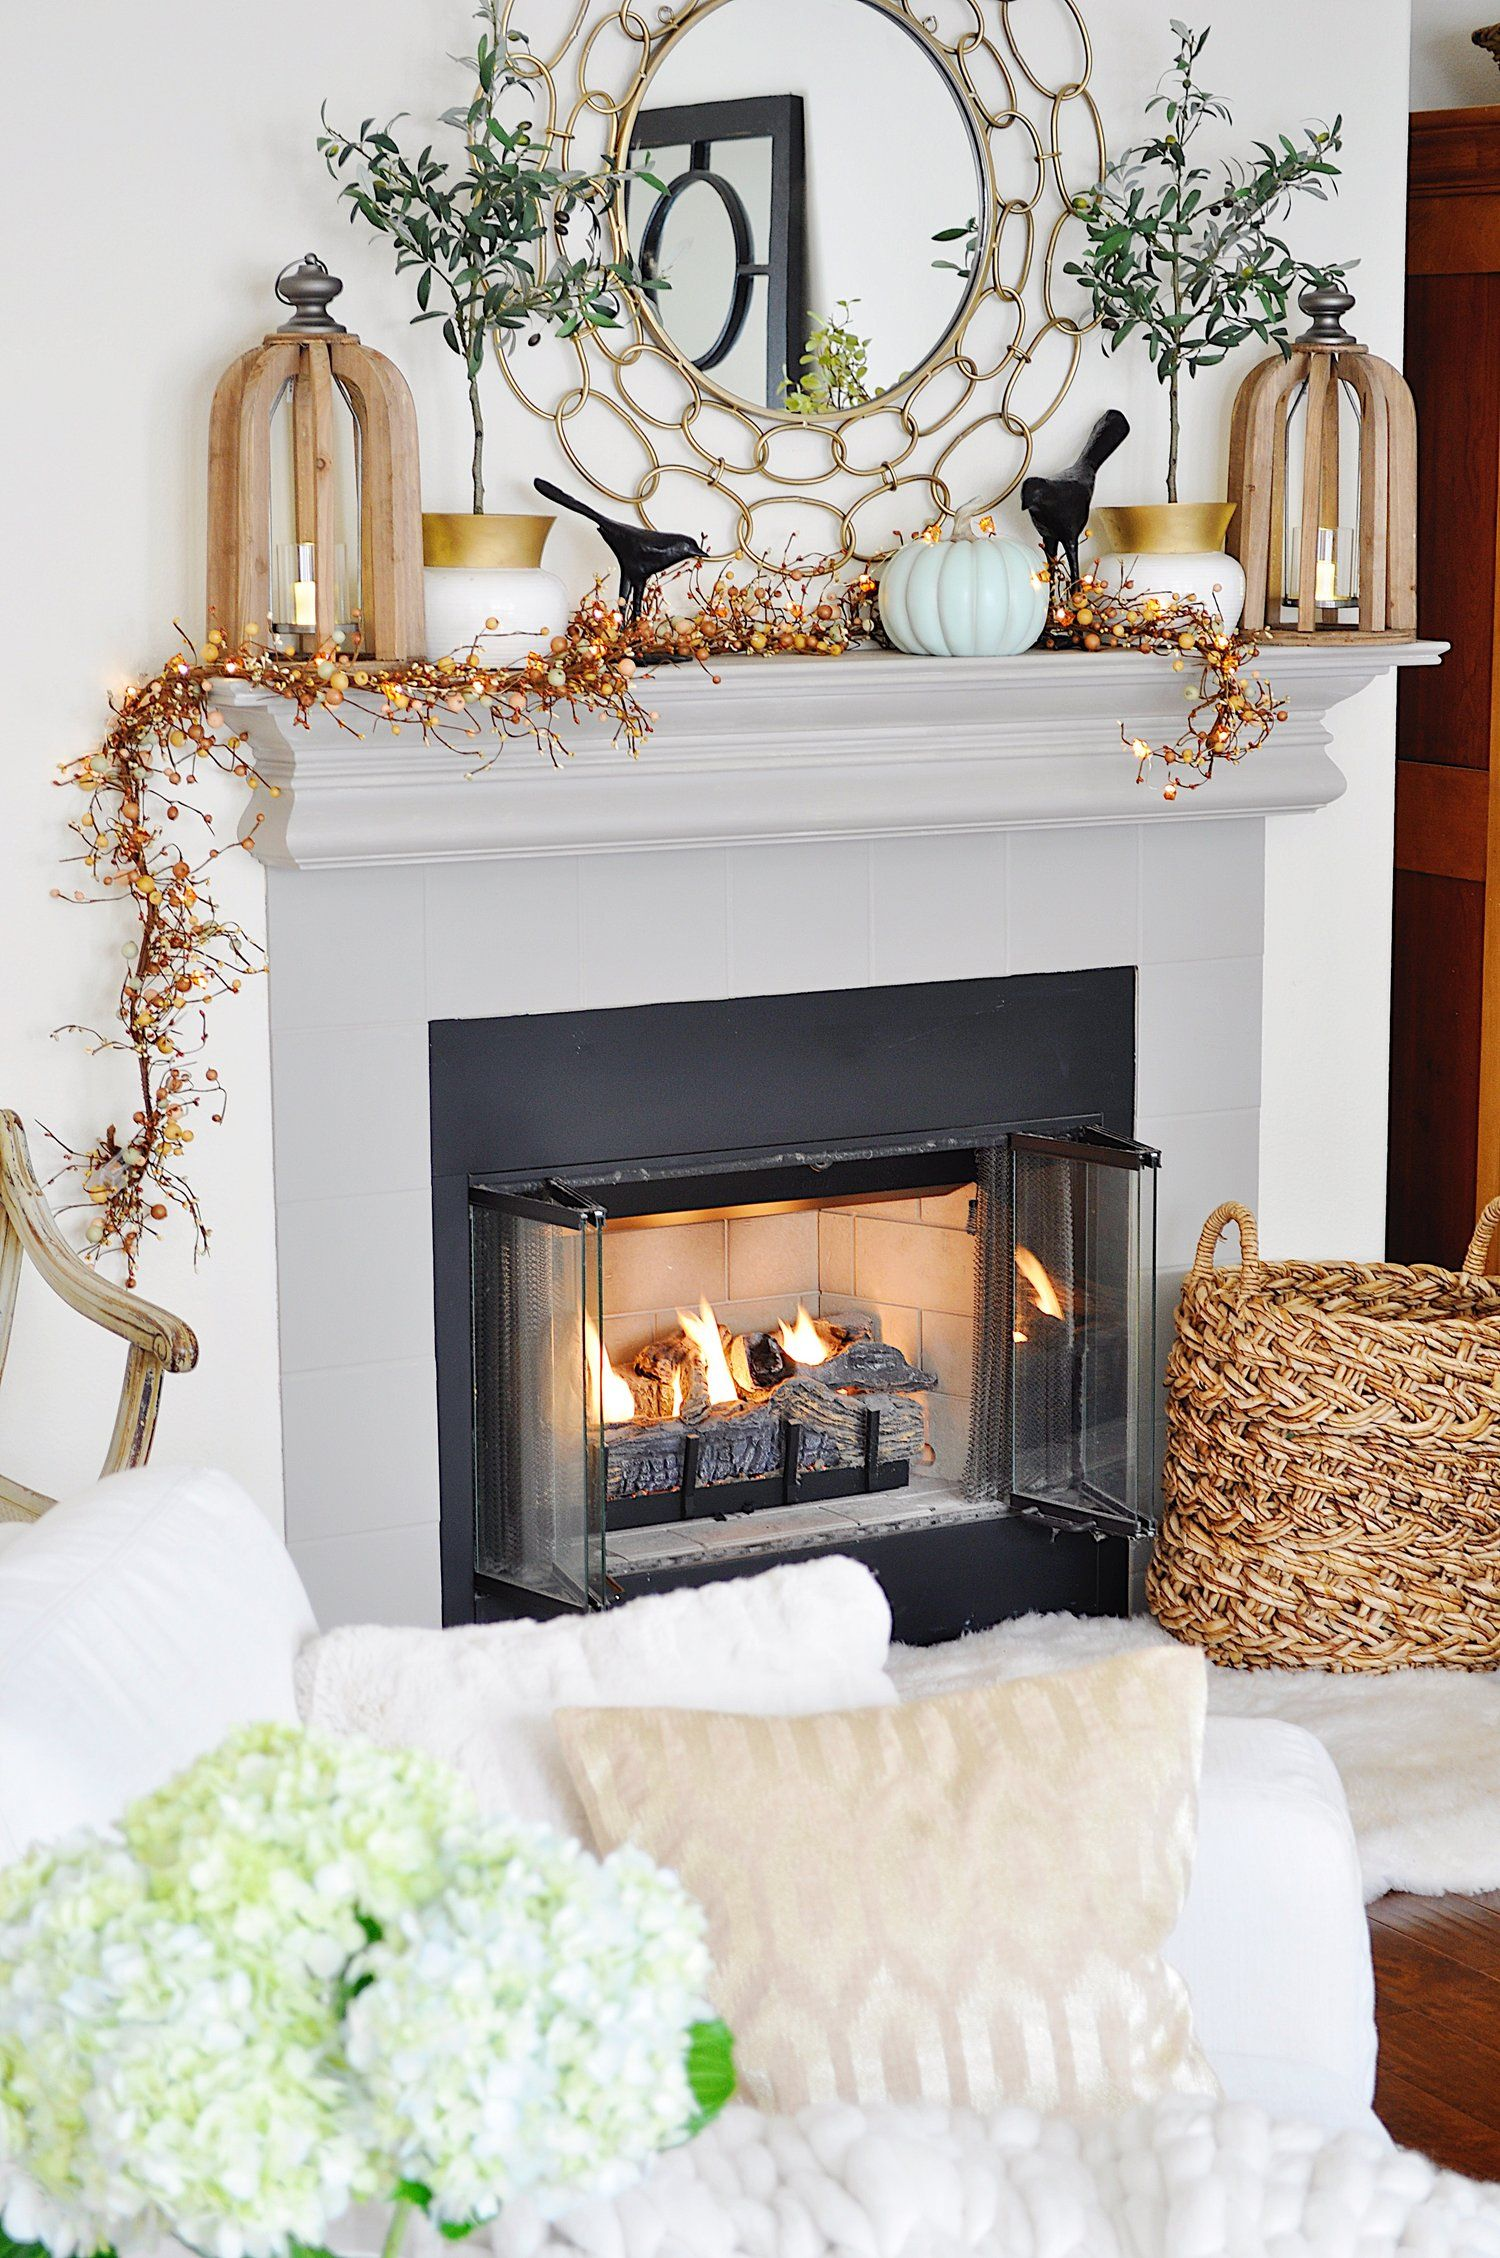 How to Decorate an Amazing Fall Mantel — 2 Ladies & A